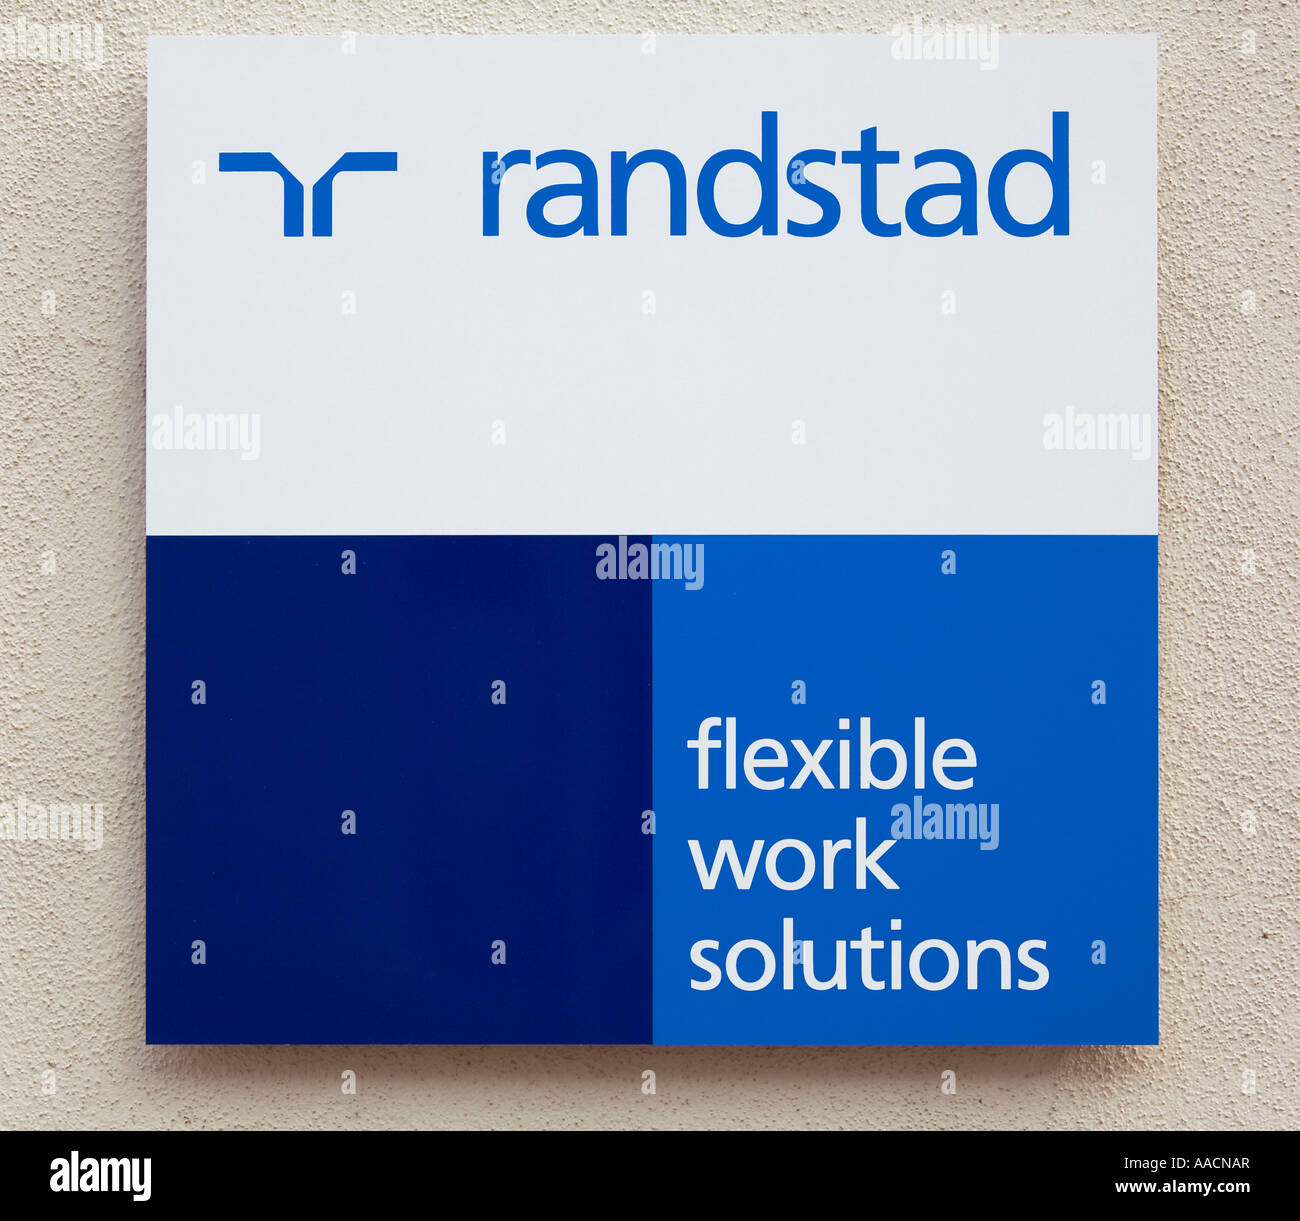 A sign for temporary employment agency Randstad - Stock Image